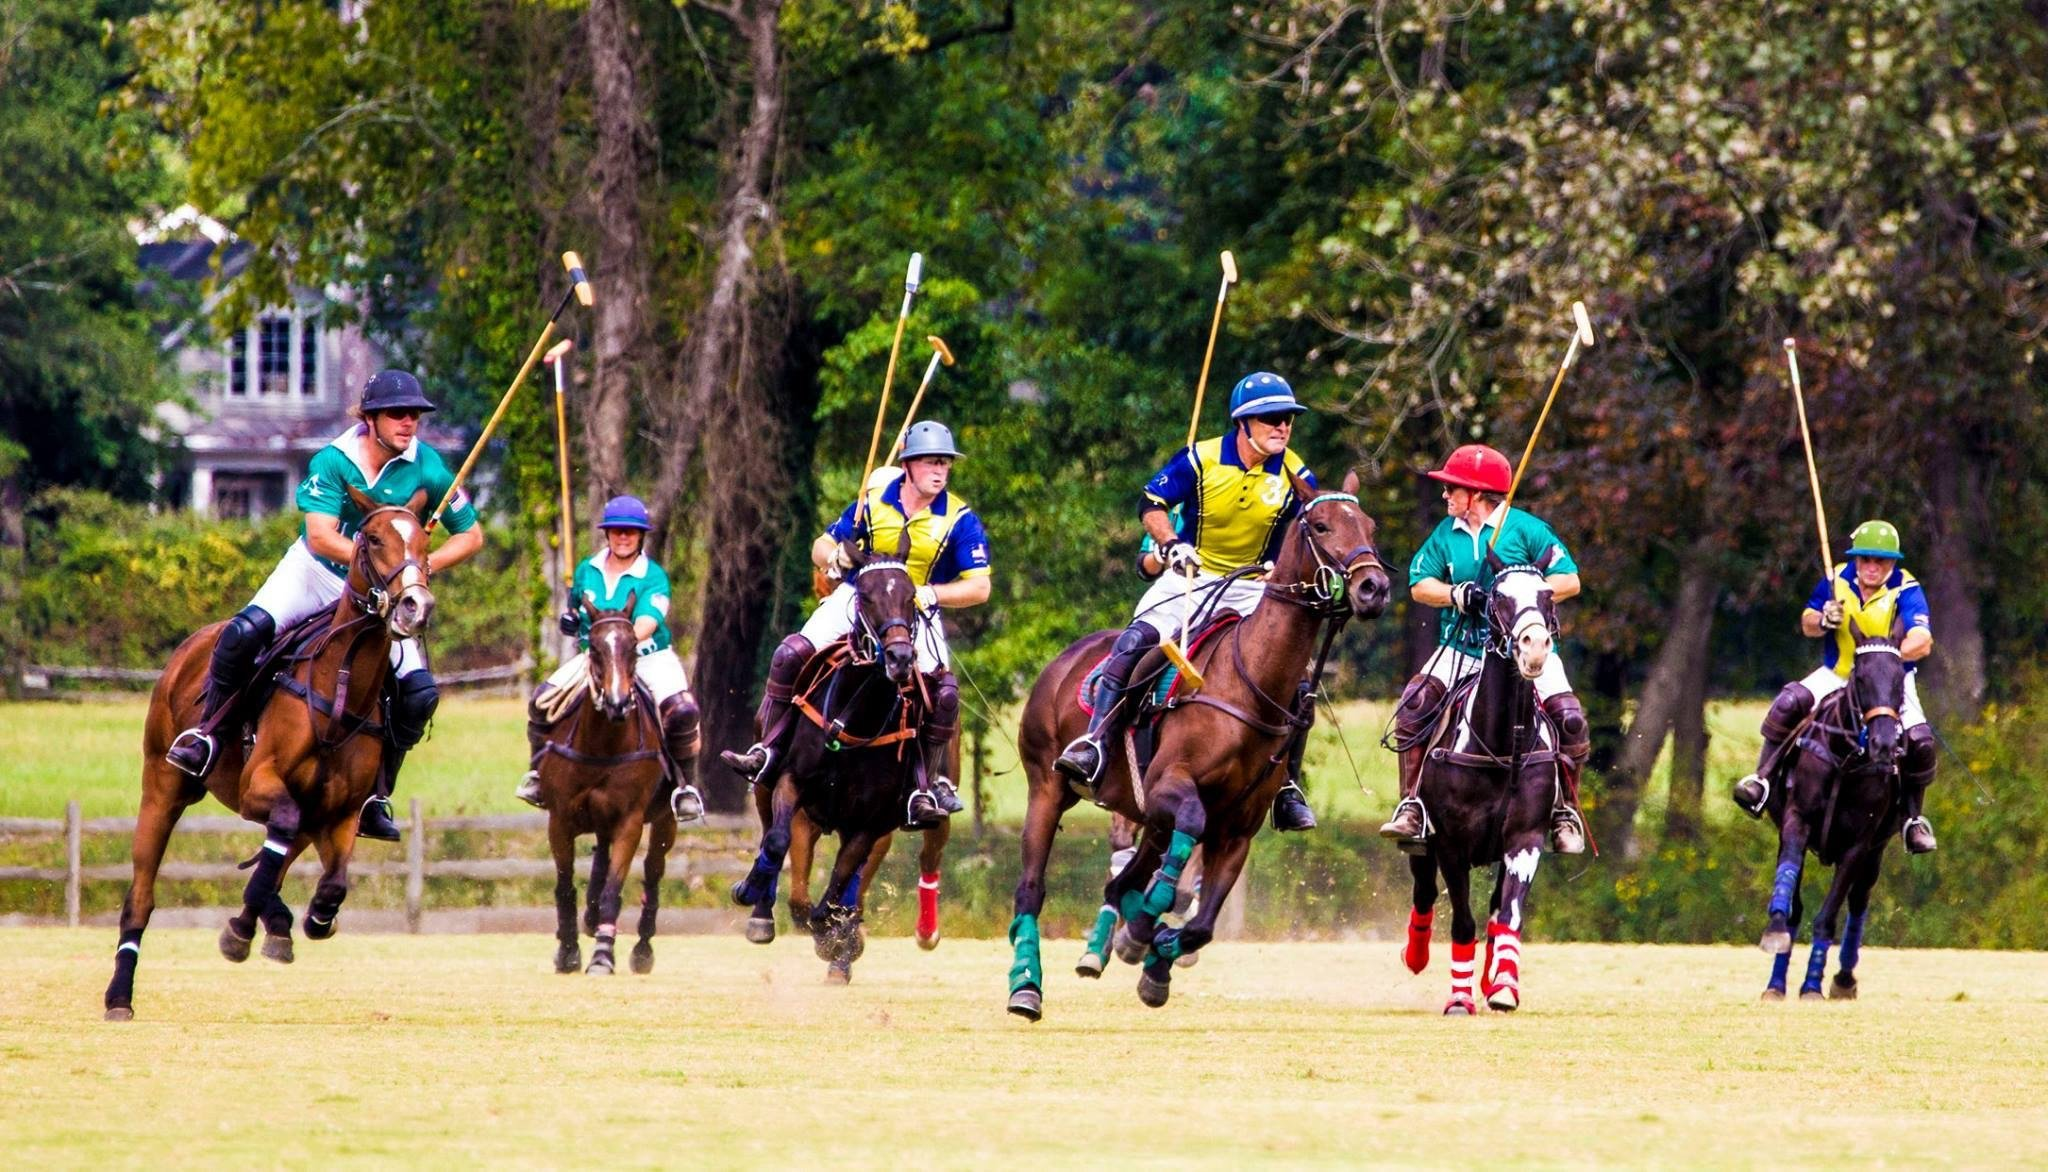 Polo in the Pines Charity Event by The Sean O'Keefe